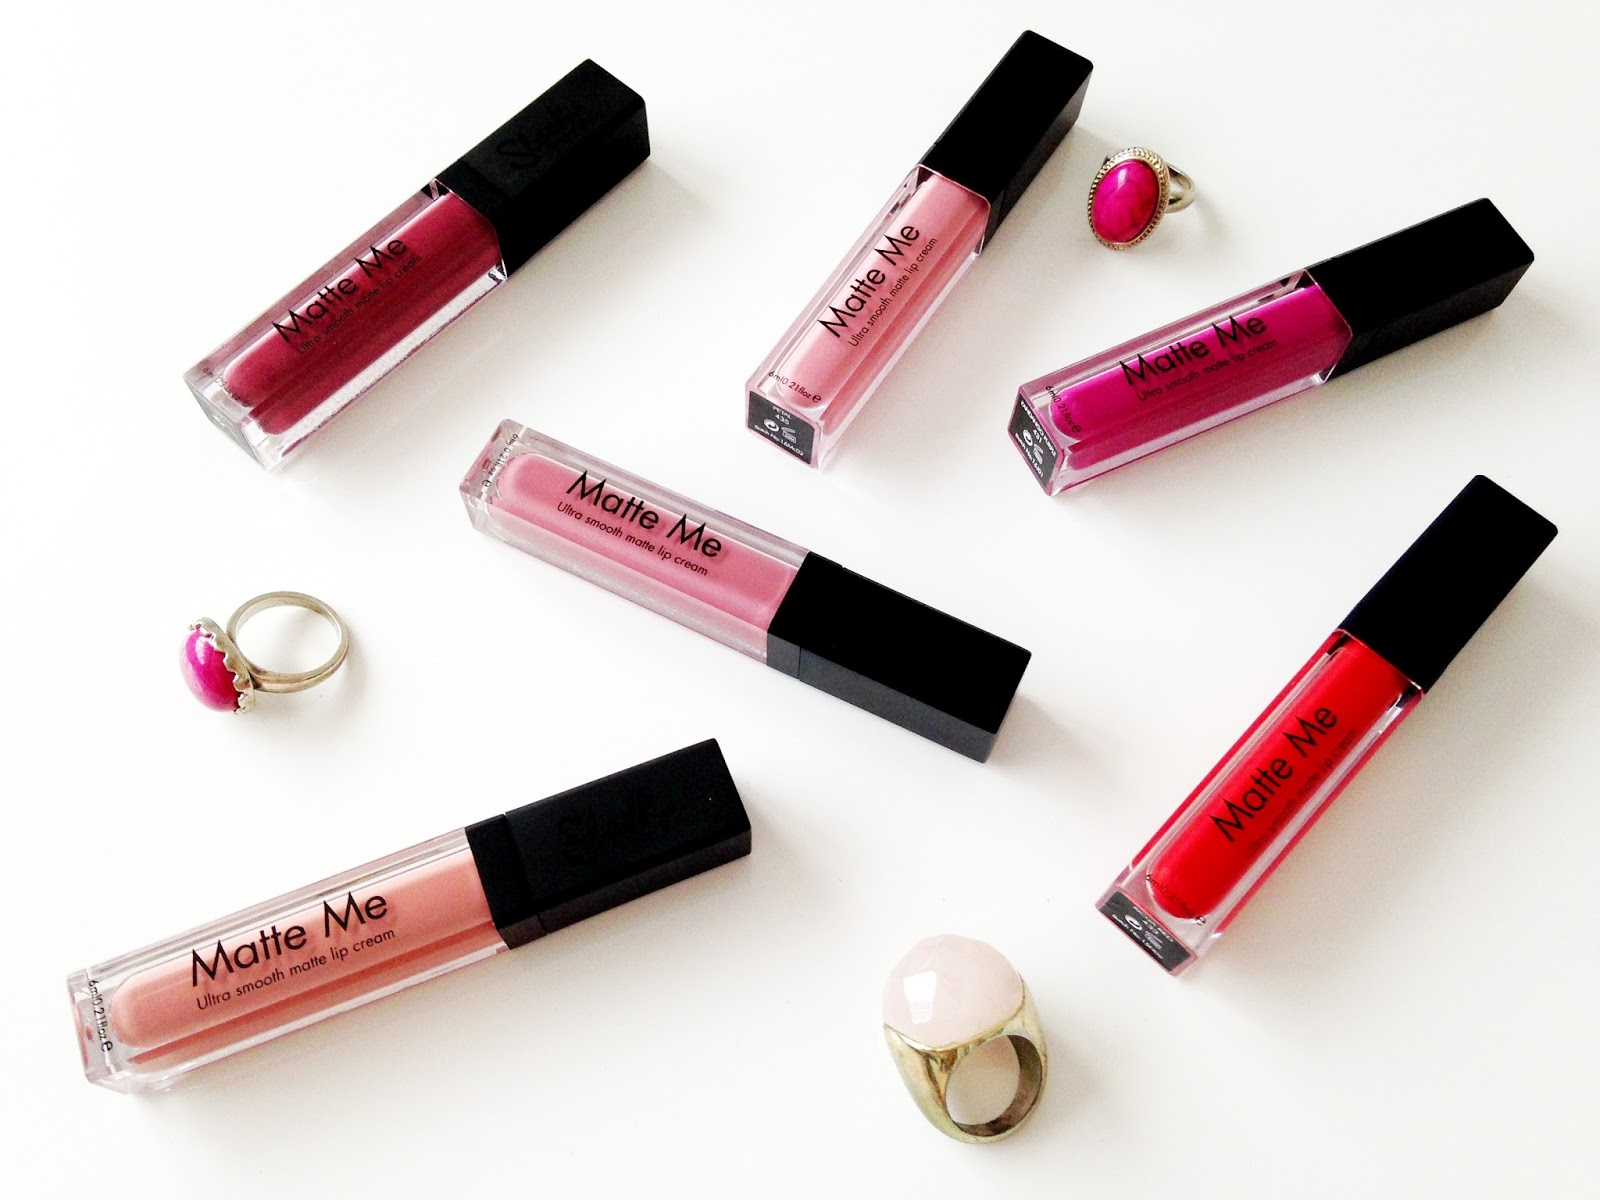 Sleek Matte Me Lip Creams